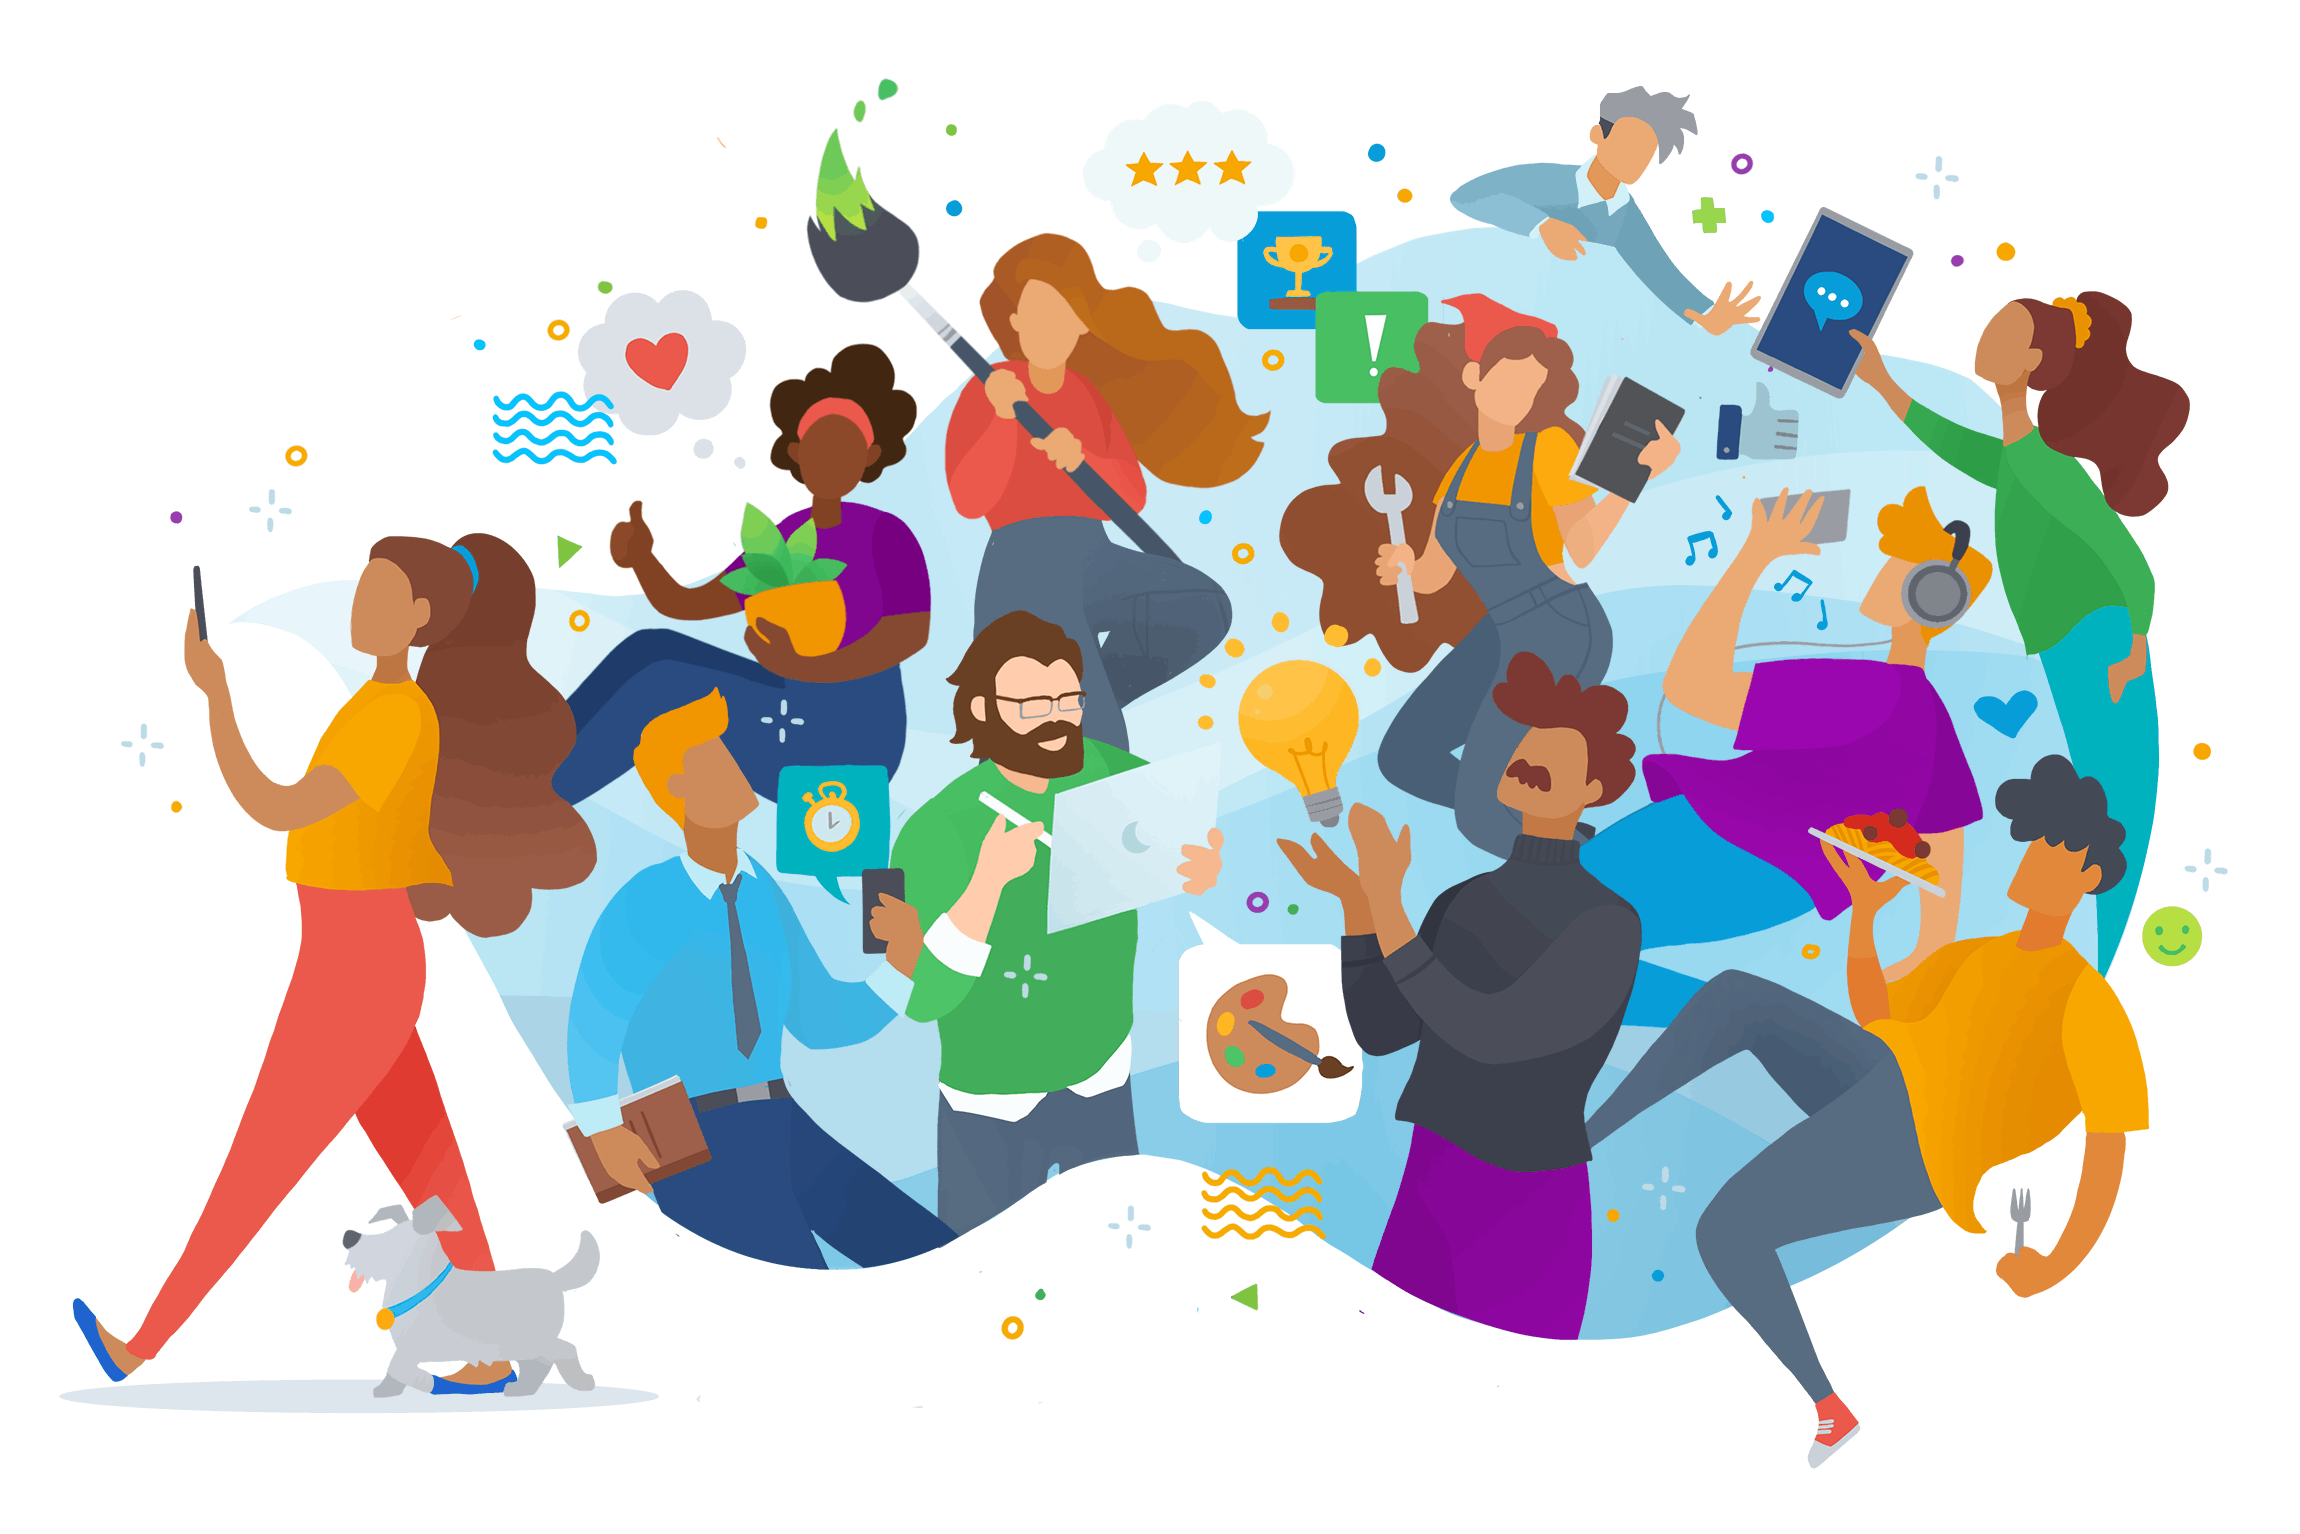 Vector art of a creative community, all springing out of a smartphone while a woman walks her dog